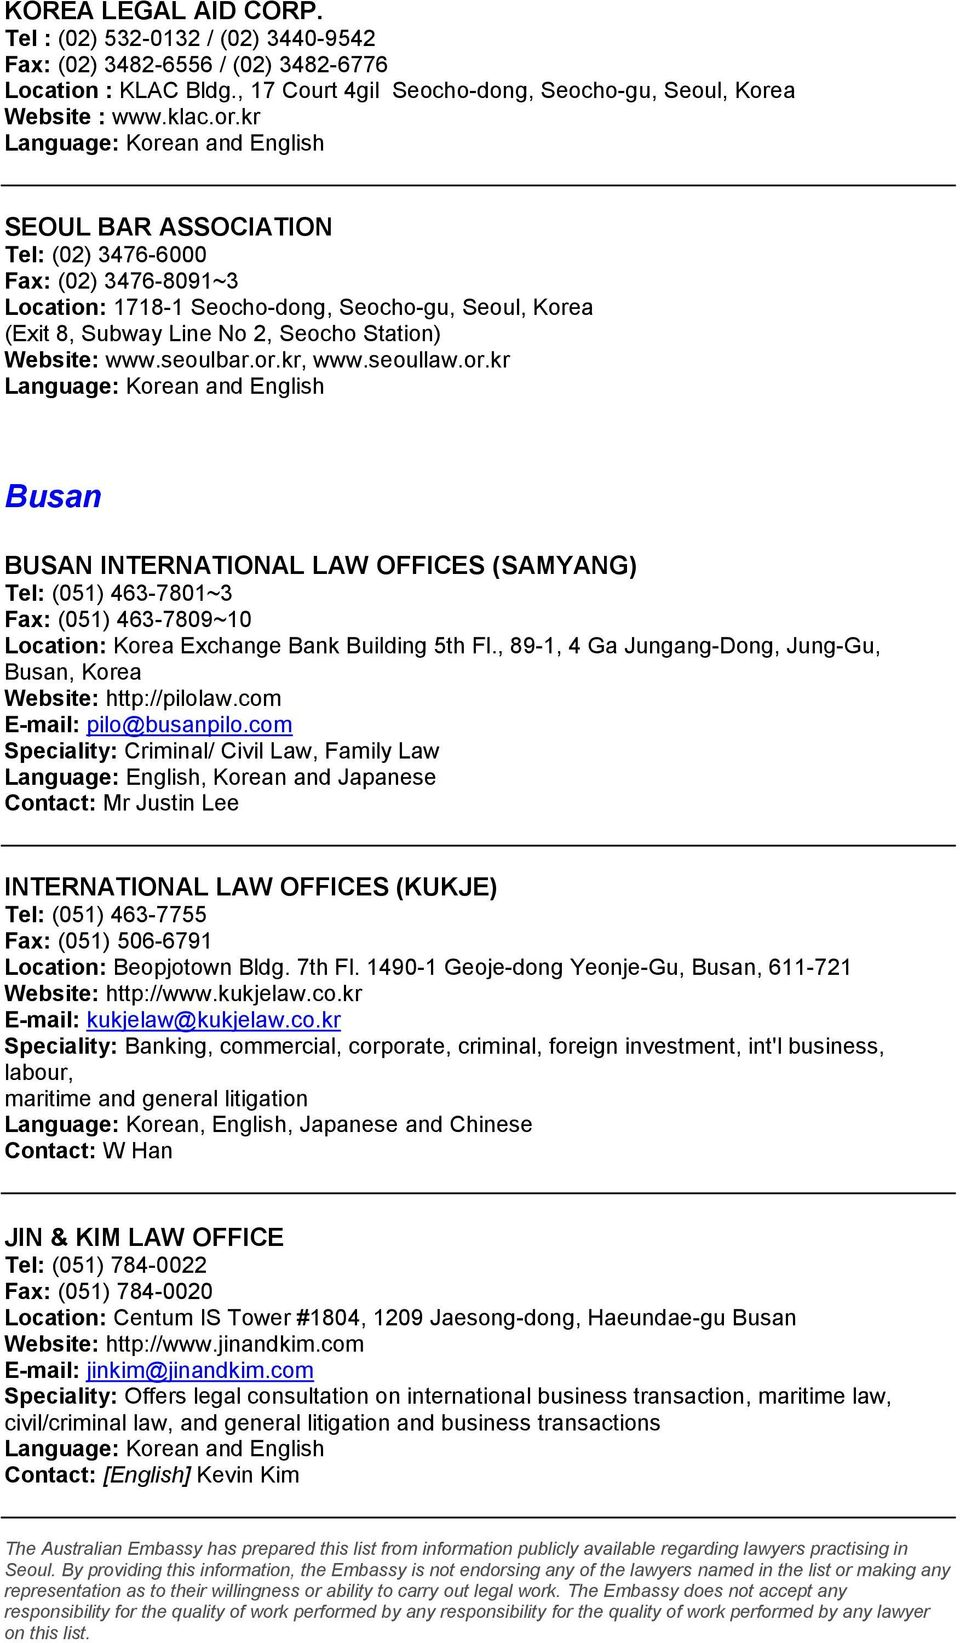 kr SEOUL BAR ASSOCIATION Tel: (02) 3476-6000 Fax: (02) 3476-8091~3 Location: 1718-1 Seocho-dong, Seocho-gu, Seoul, Korea (Exit 8, Subway Line No 2, Seocho Station) Website: www.seoulbar.or.kr, www.